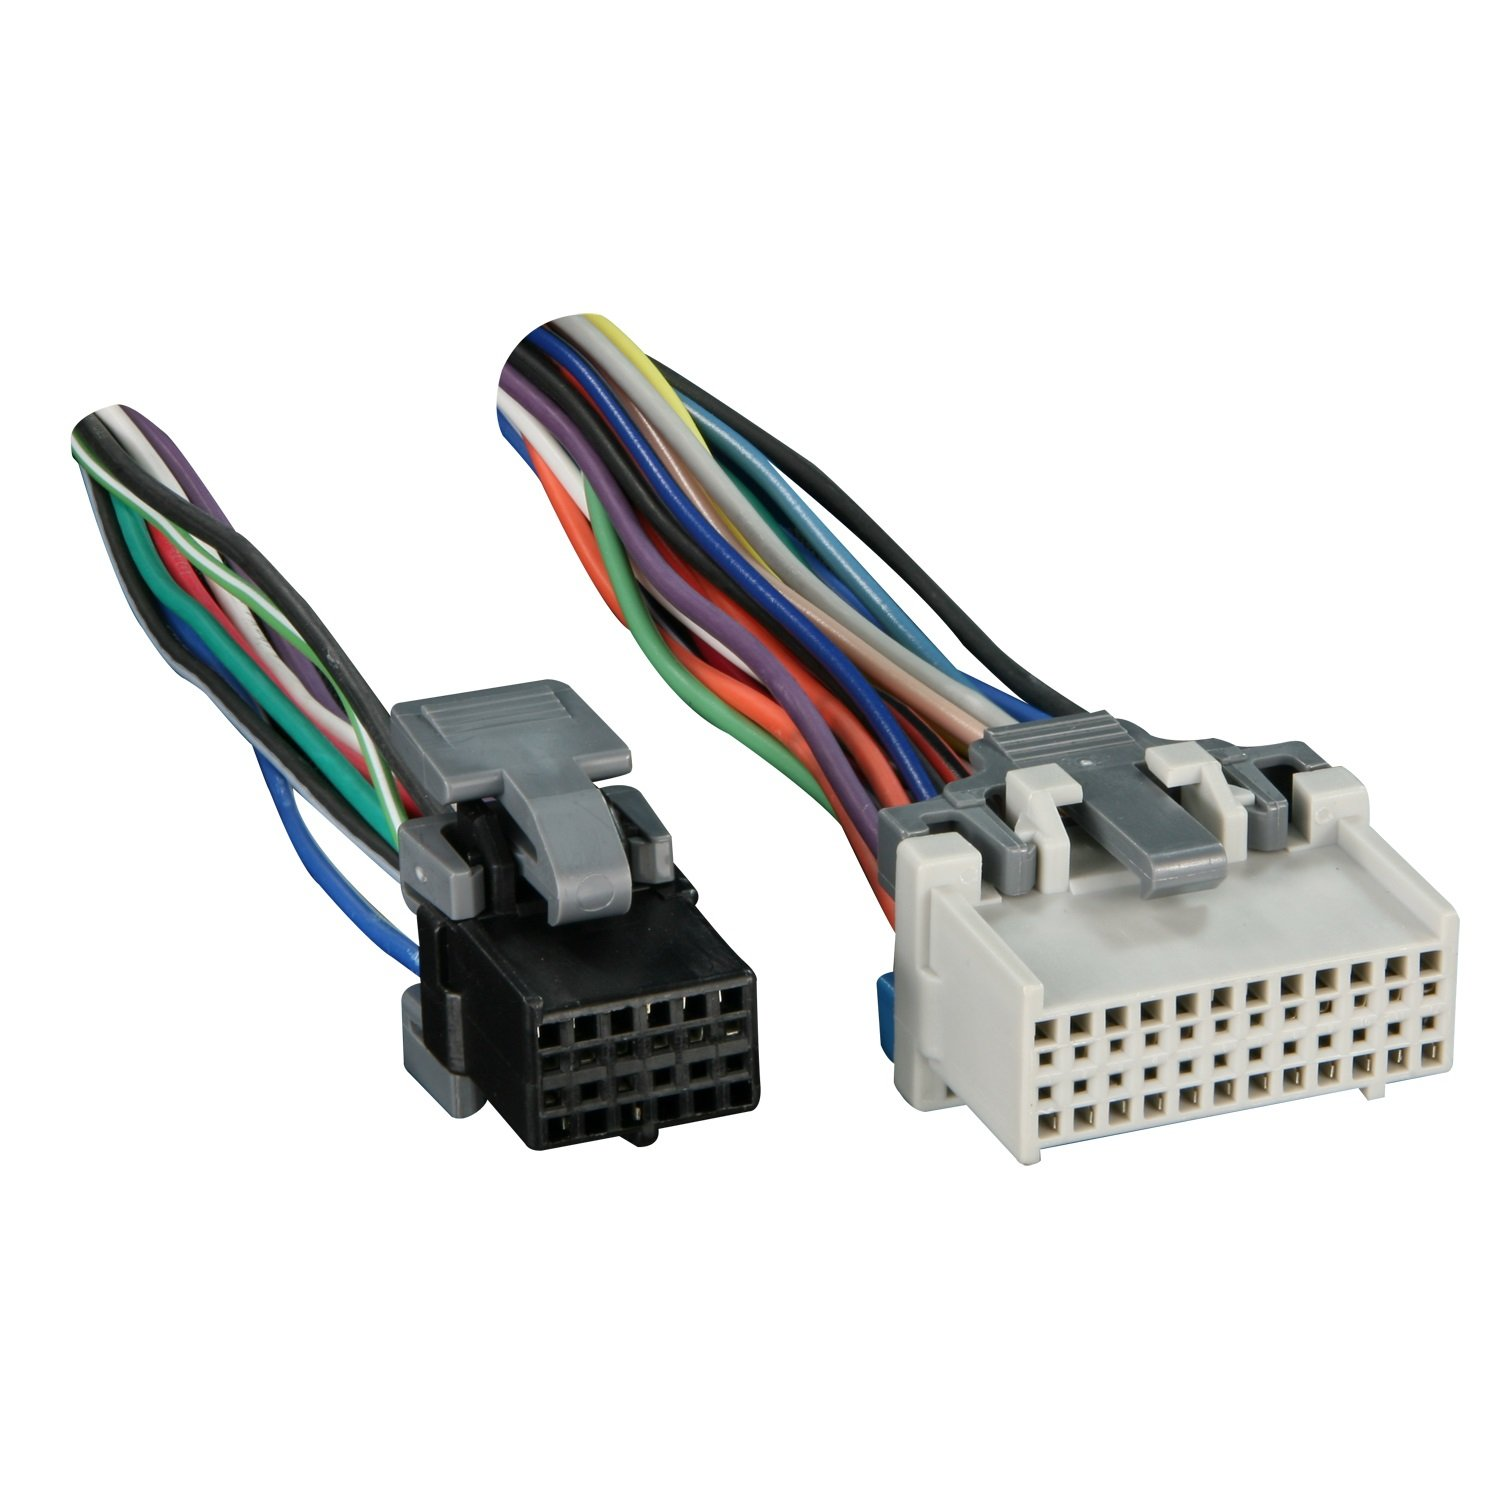 711log4bdML._SL1500_ amazon com metra turbowires 71 2003 1 wiring harness car electronics Wire Harness Assembly at virtualis.co